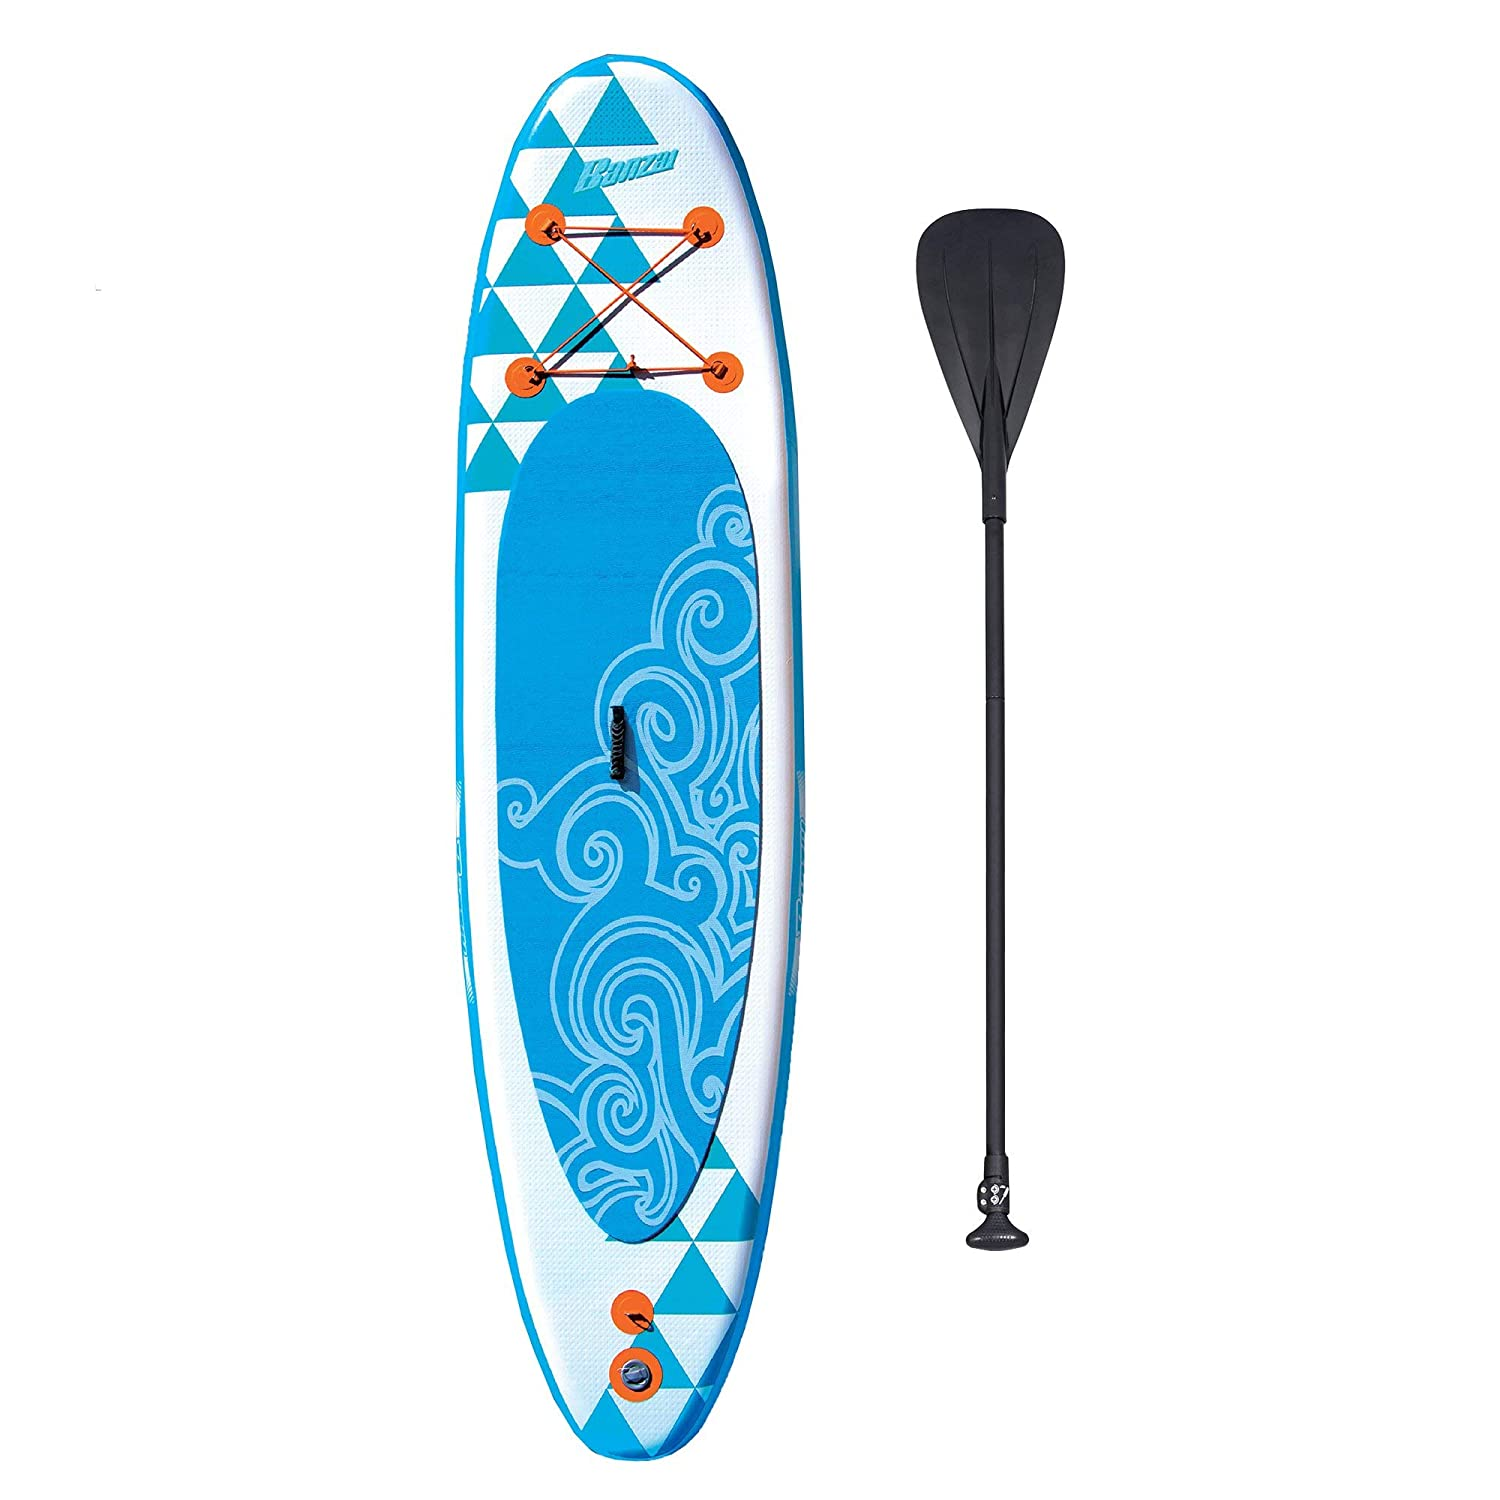 Amazon.com : Banzai 10 Inflatable SUP Stand Up Paddle Board ...